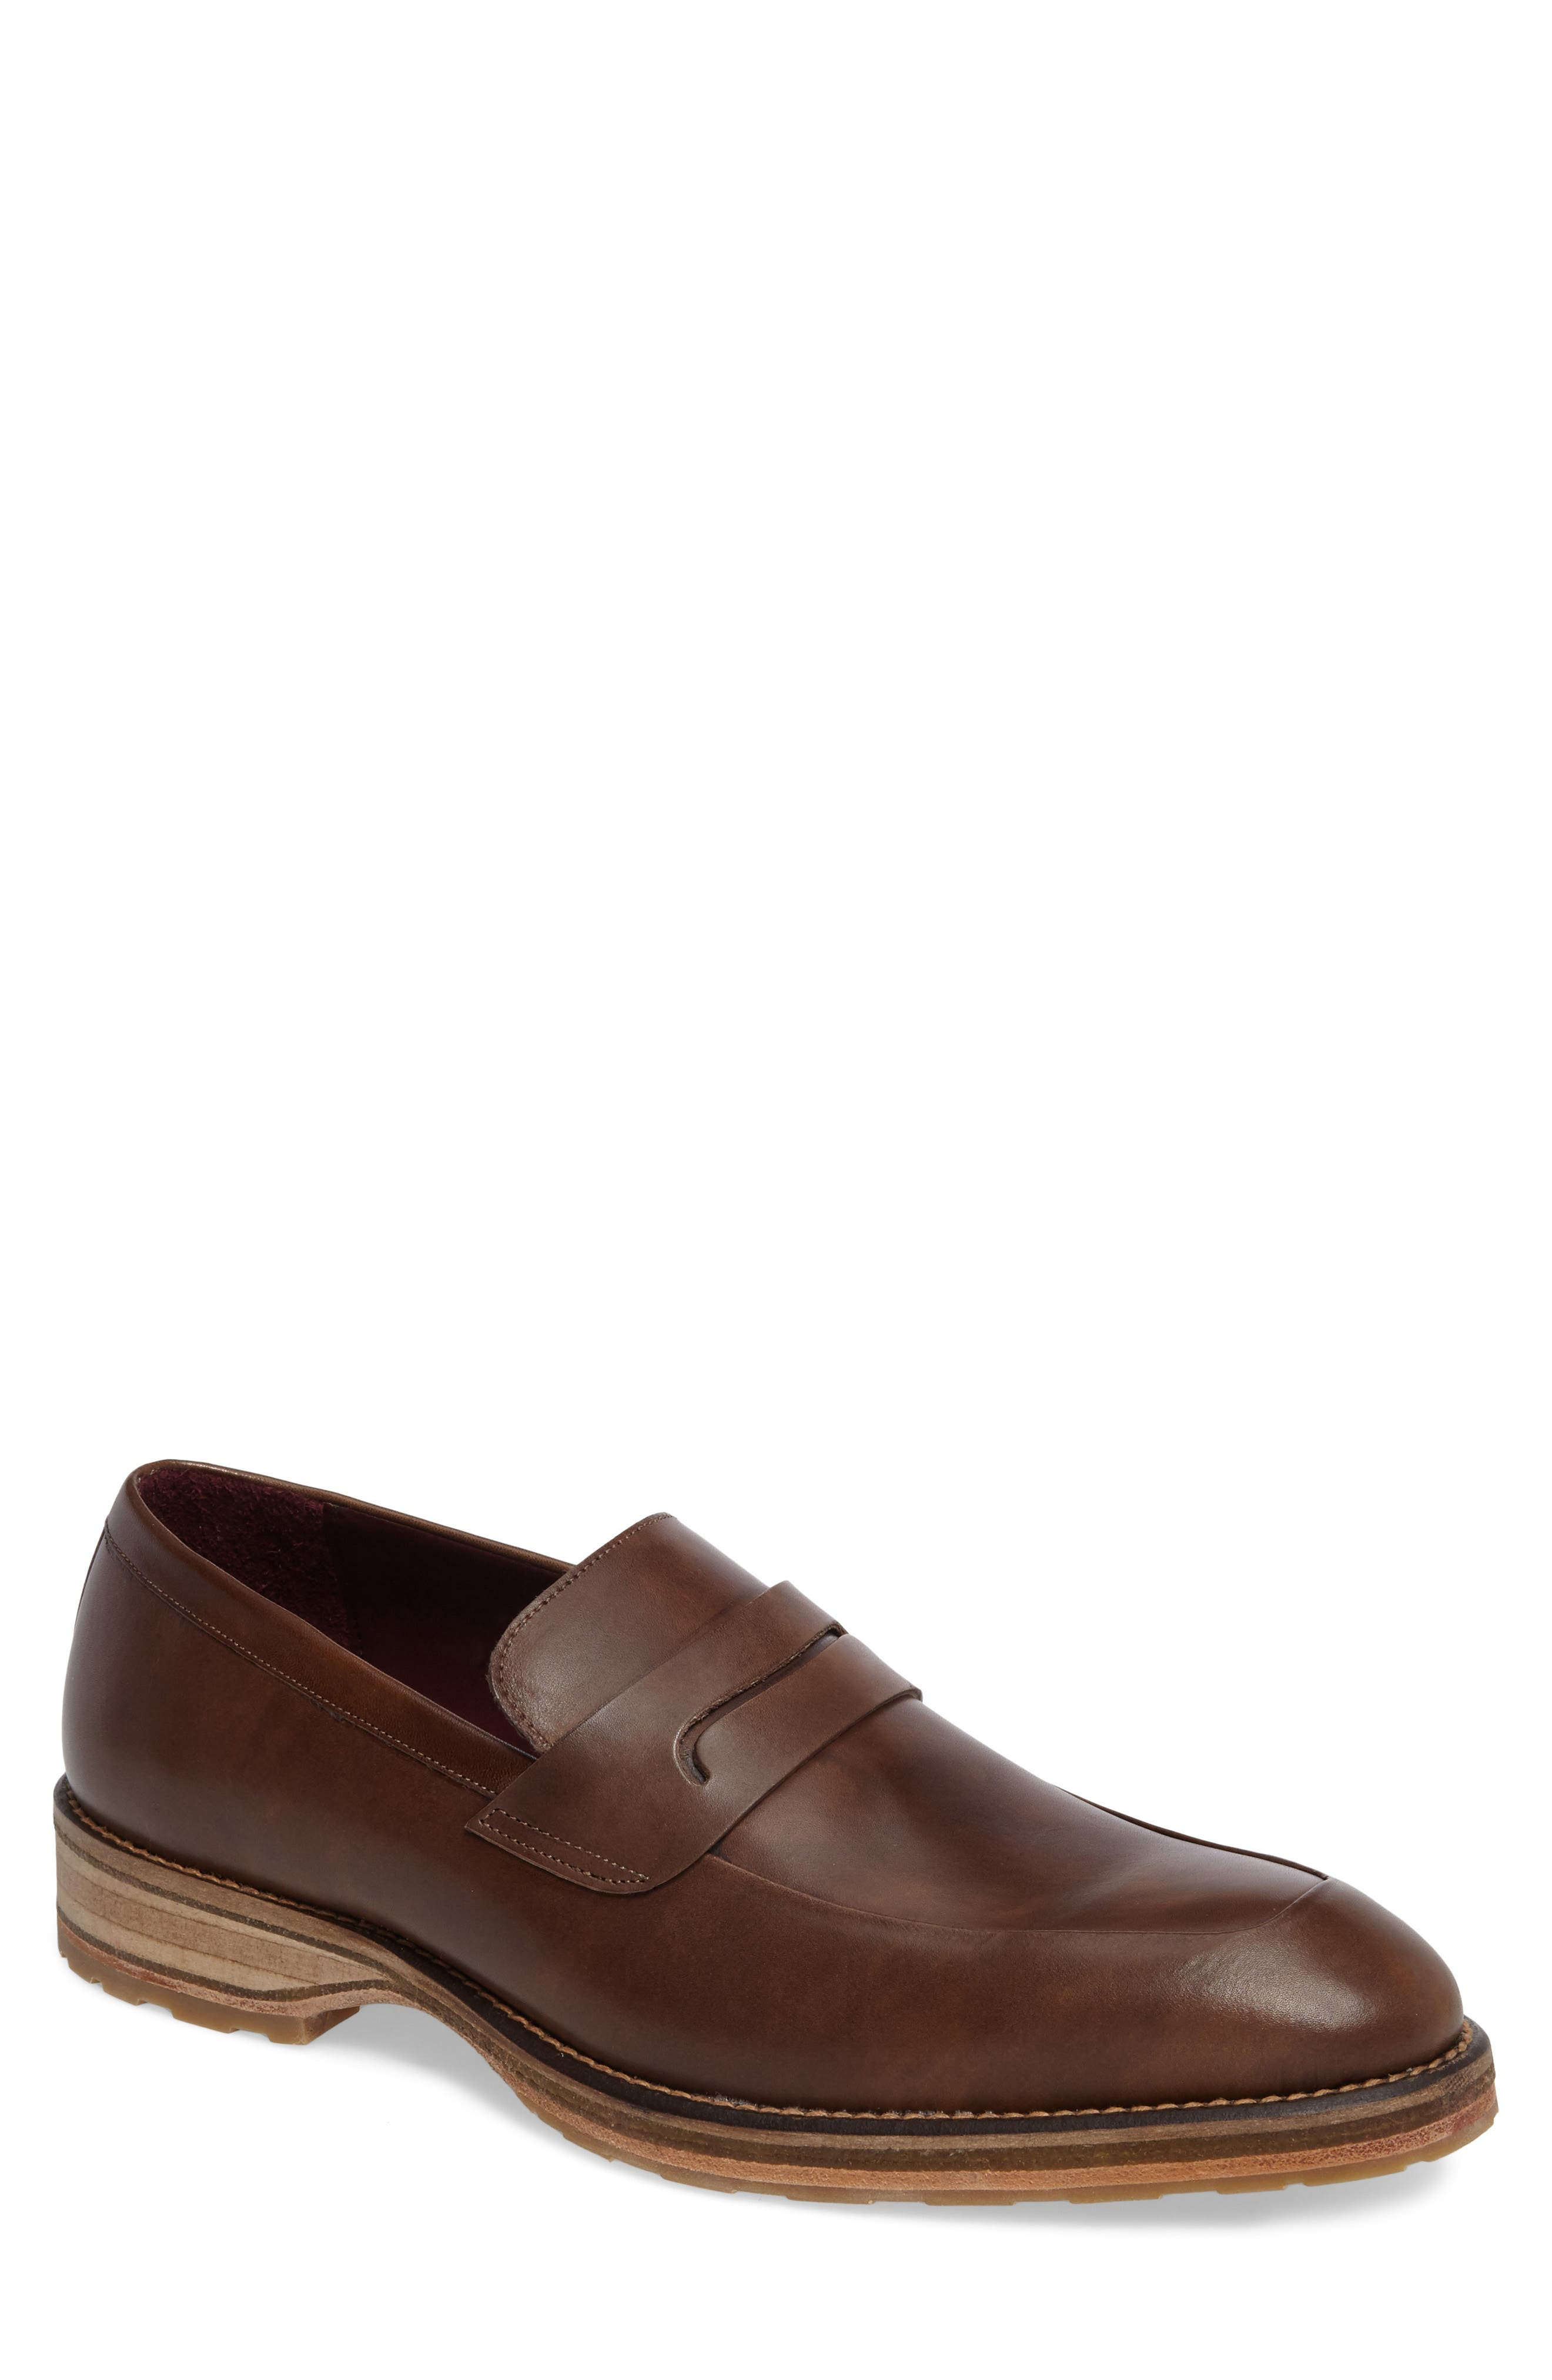 Cantonia Penny Loafer,                             Main thumbnail 1, color,                             Taupe Leather